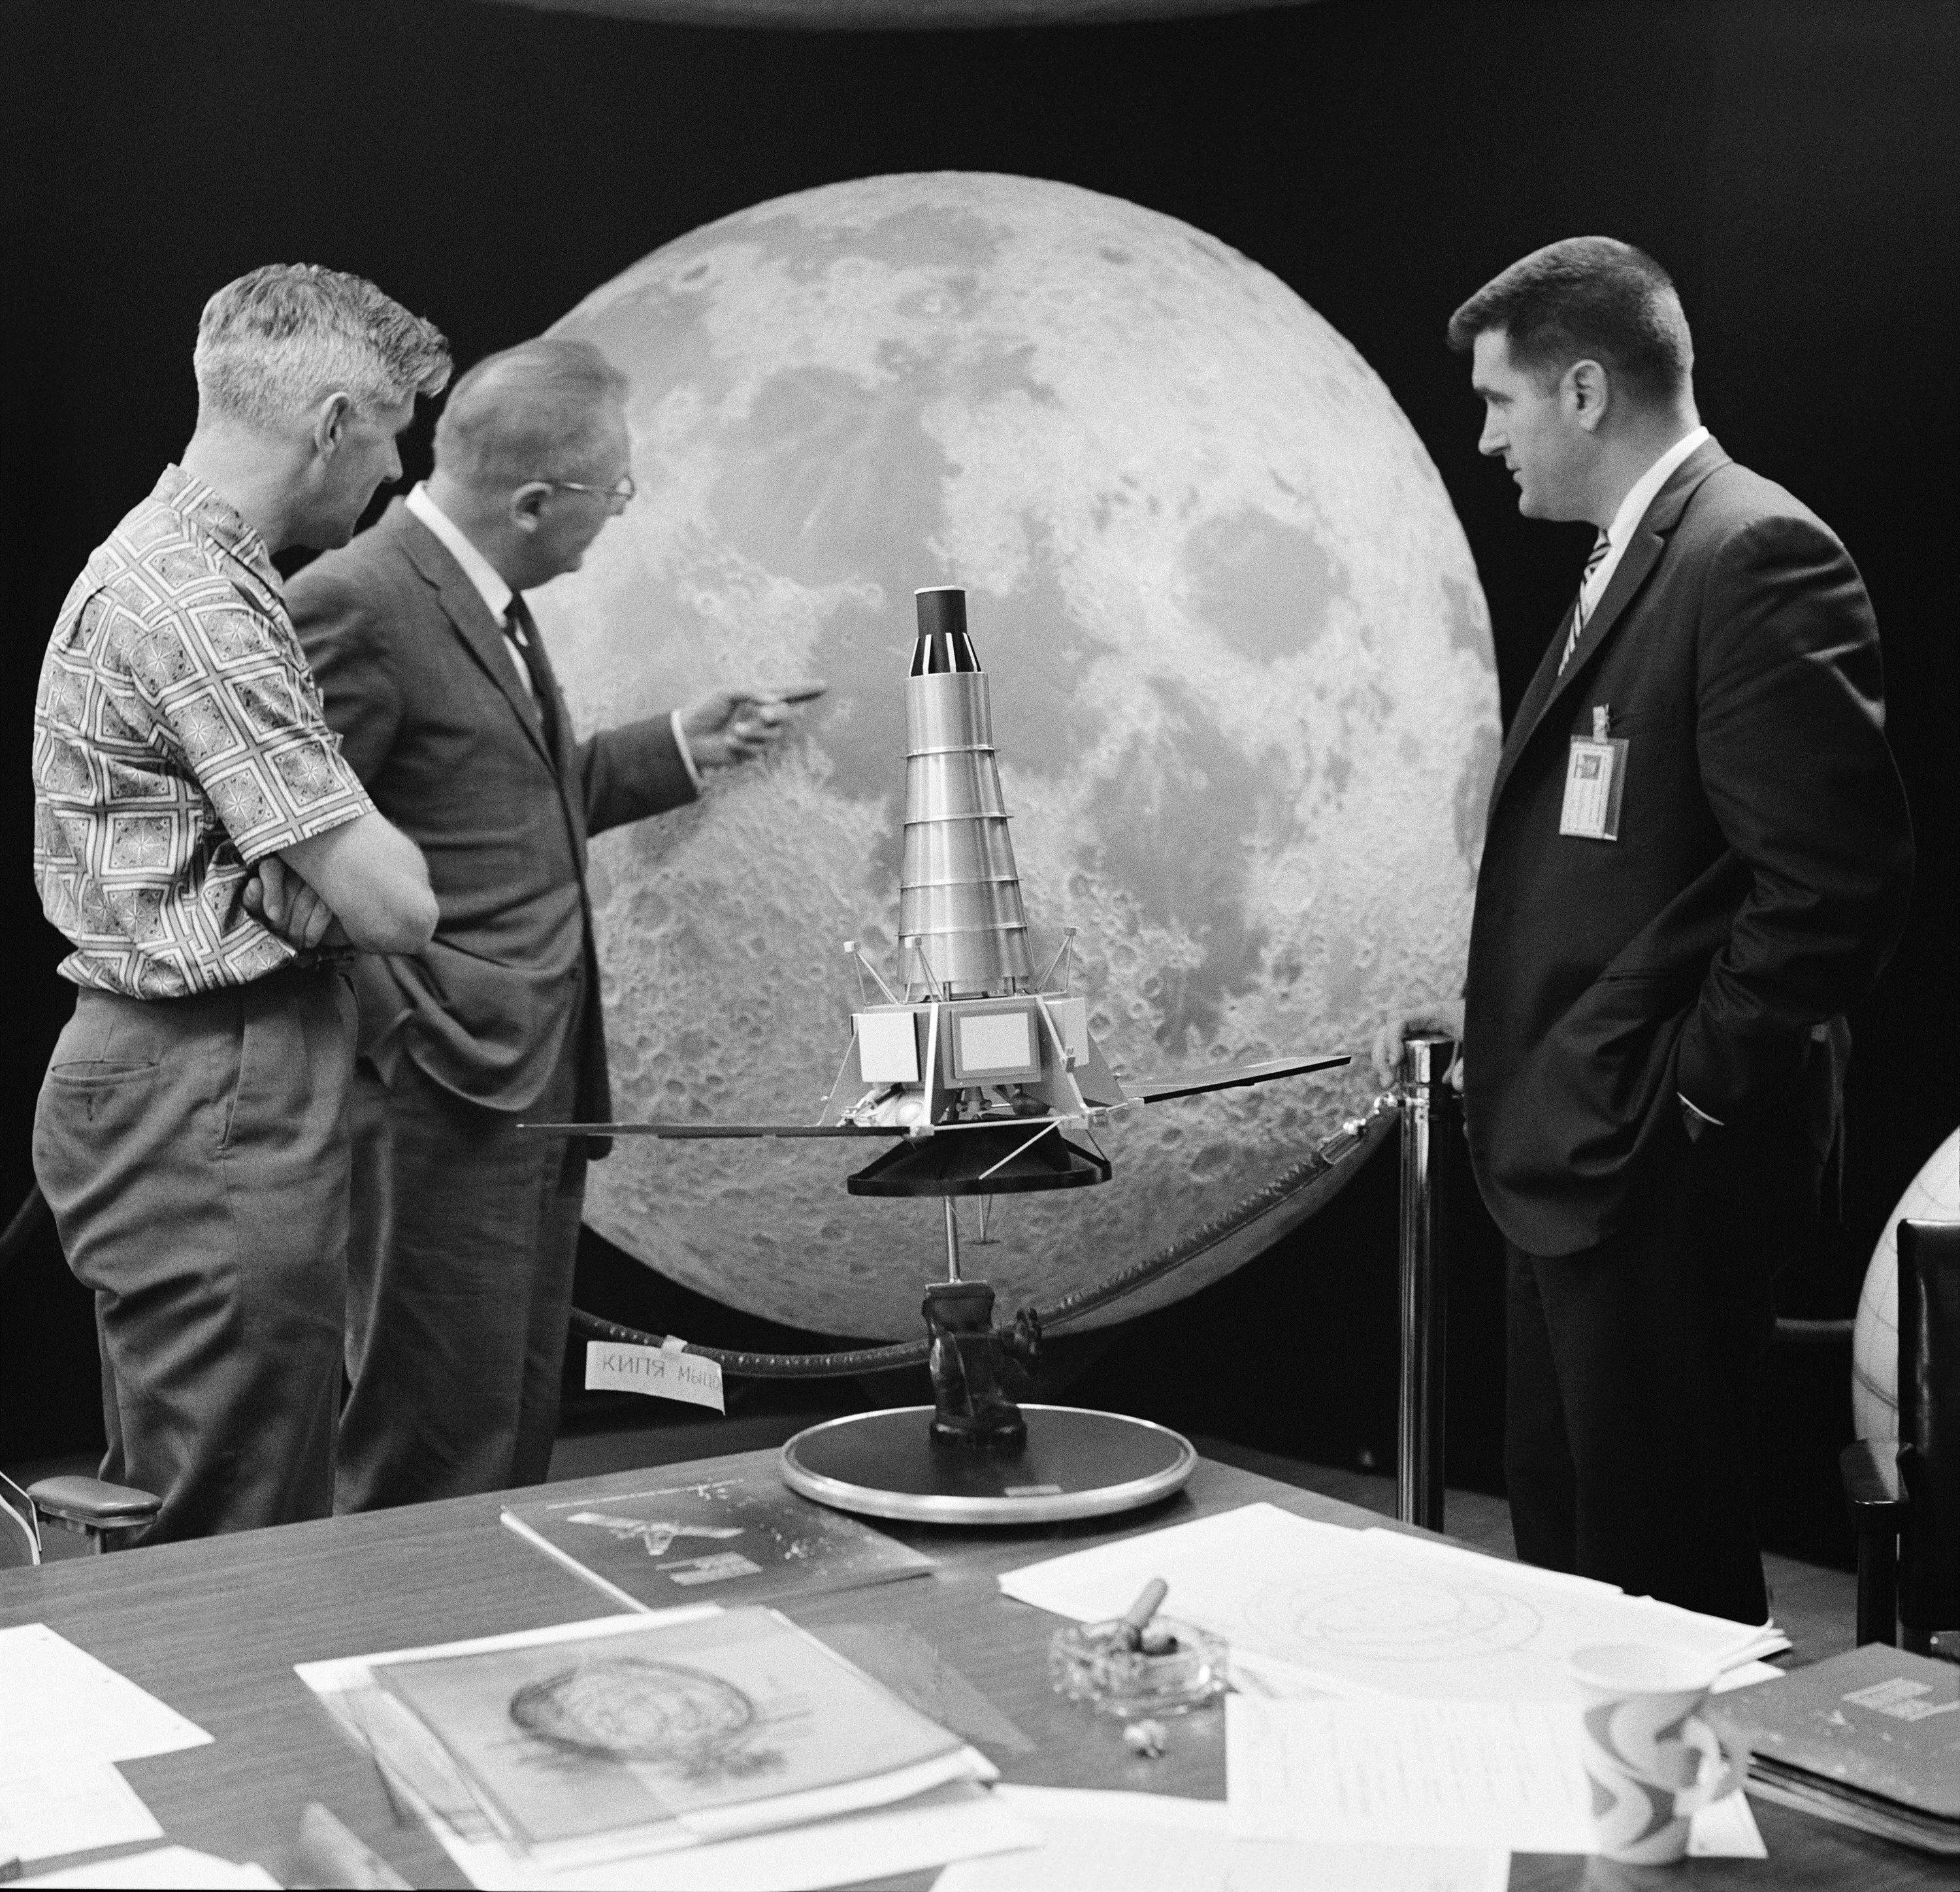 Three members of the Ranger 7 television experiment team stand near a scale model and lunar globe. From left: Ewen Whitaker, Dr. Gerard Kuiper, and Ray Heacock.